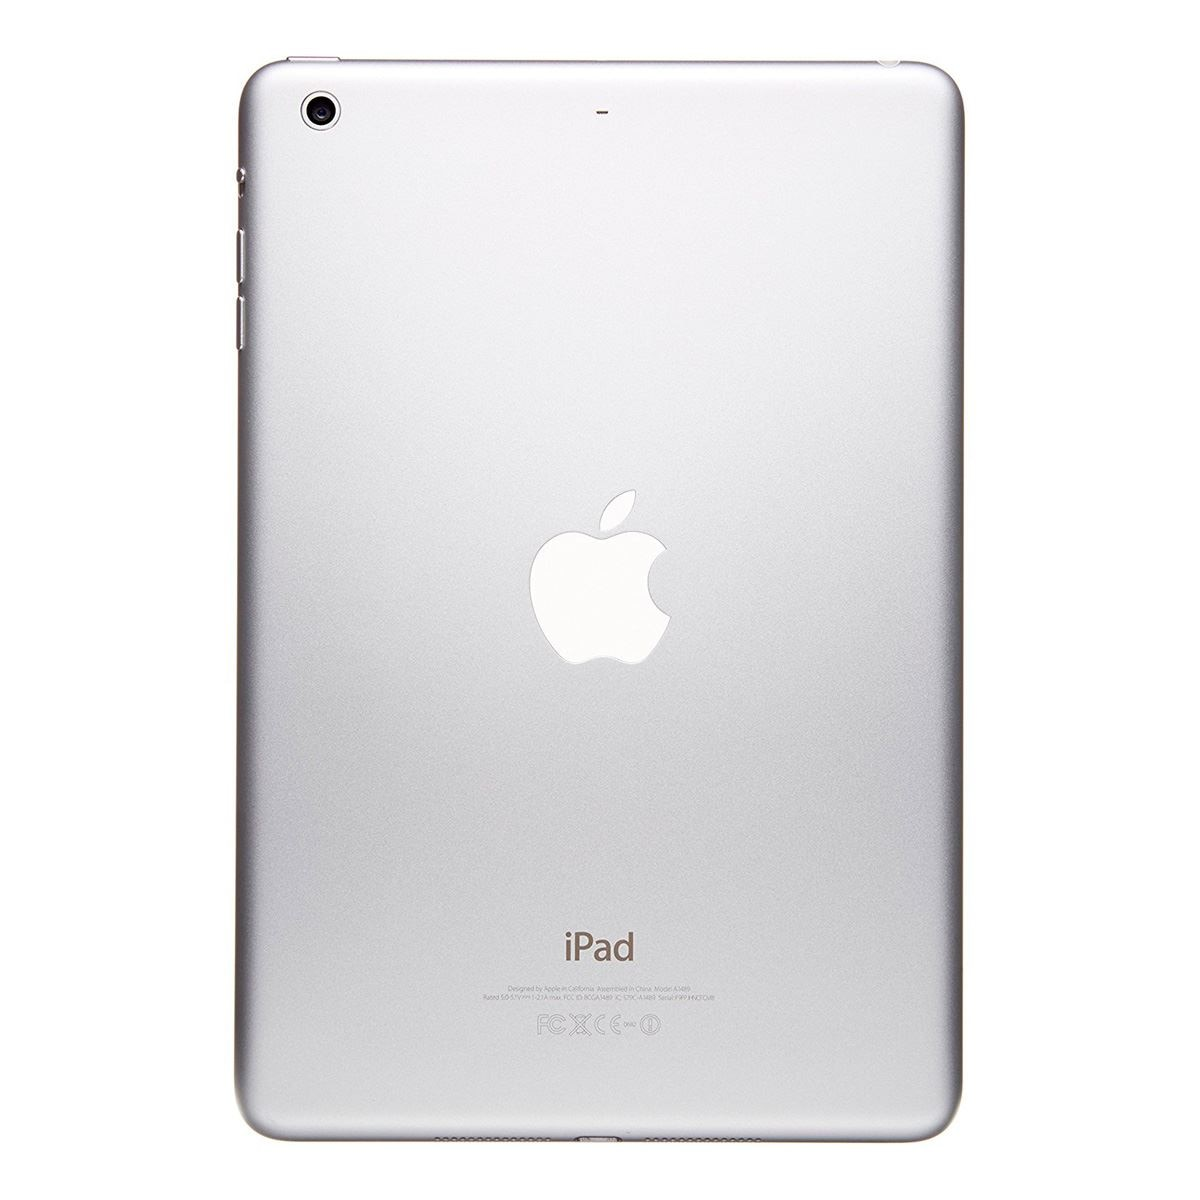 Ipad 32gb silver  - Sanborns